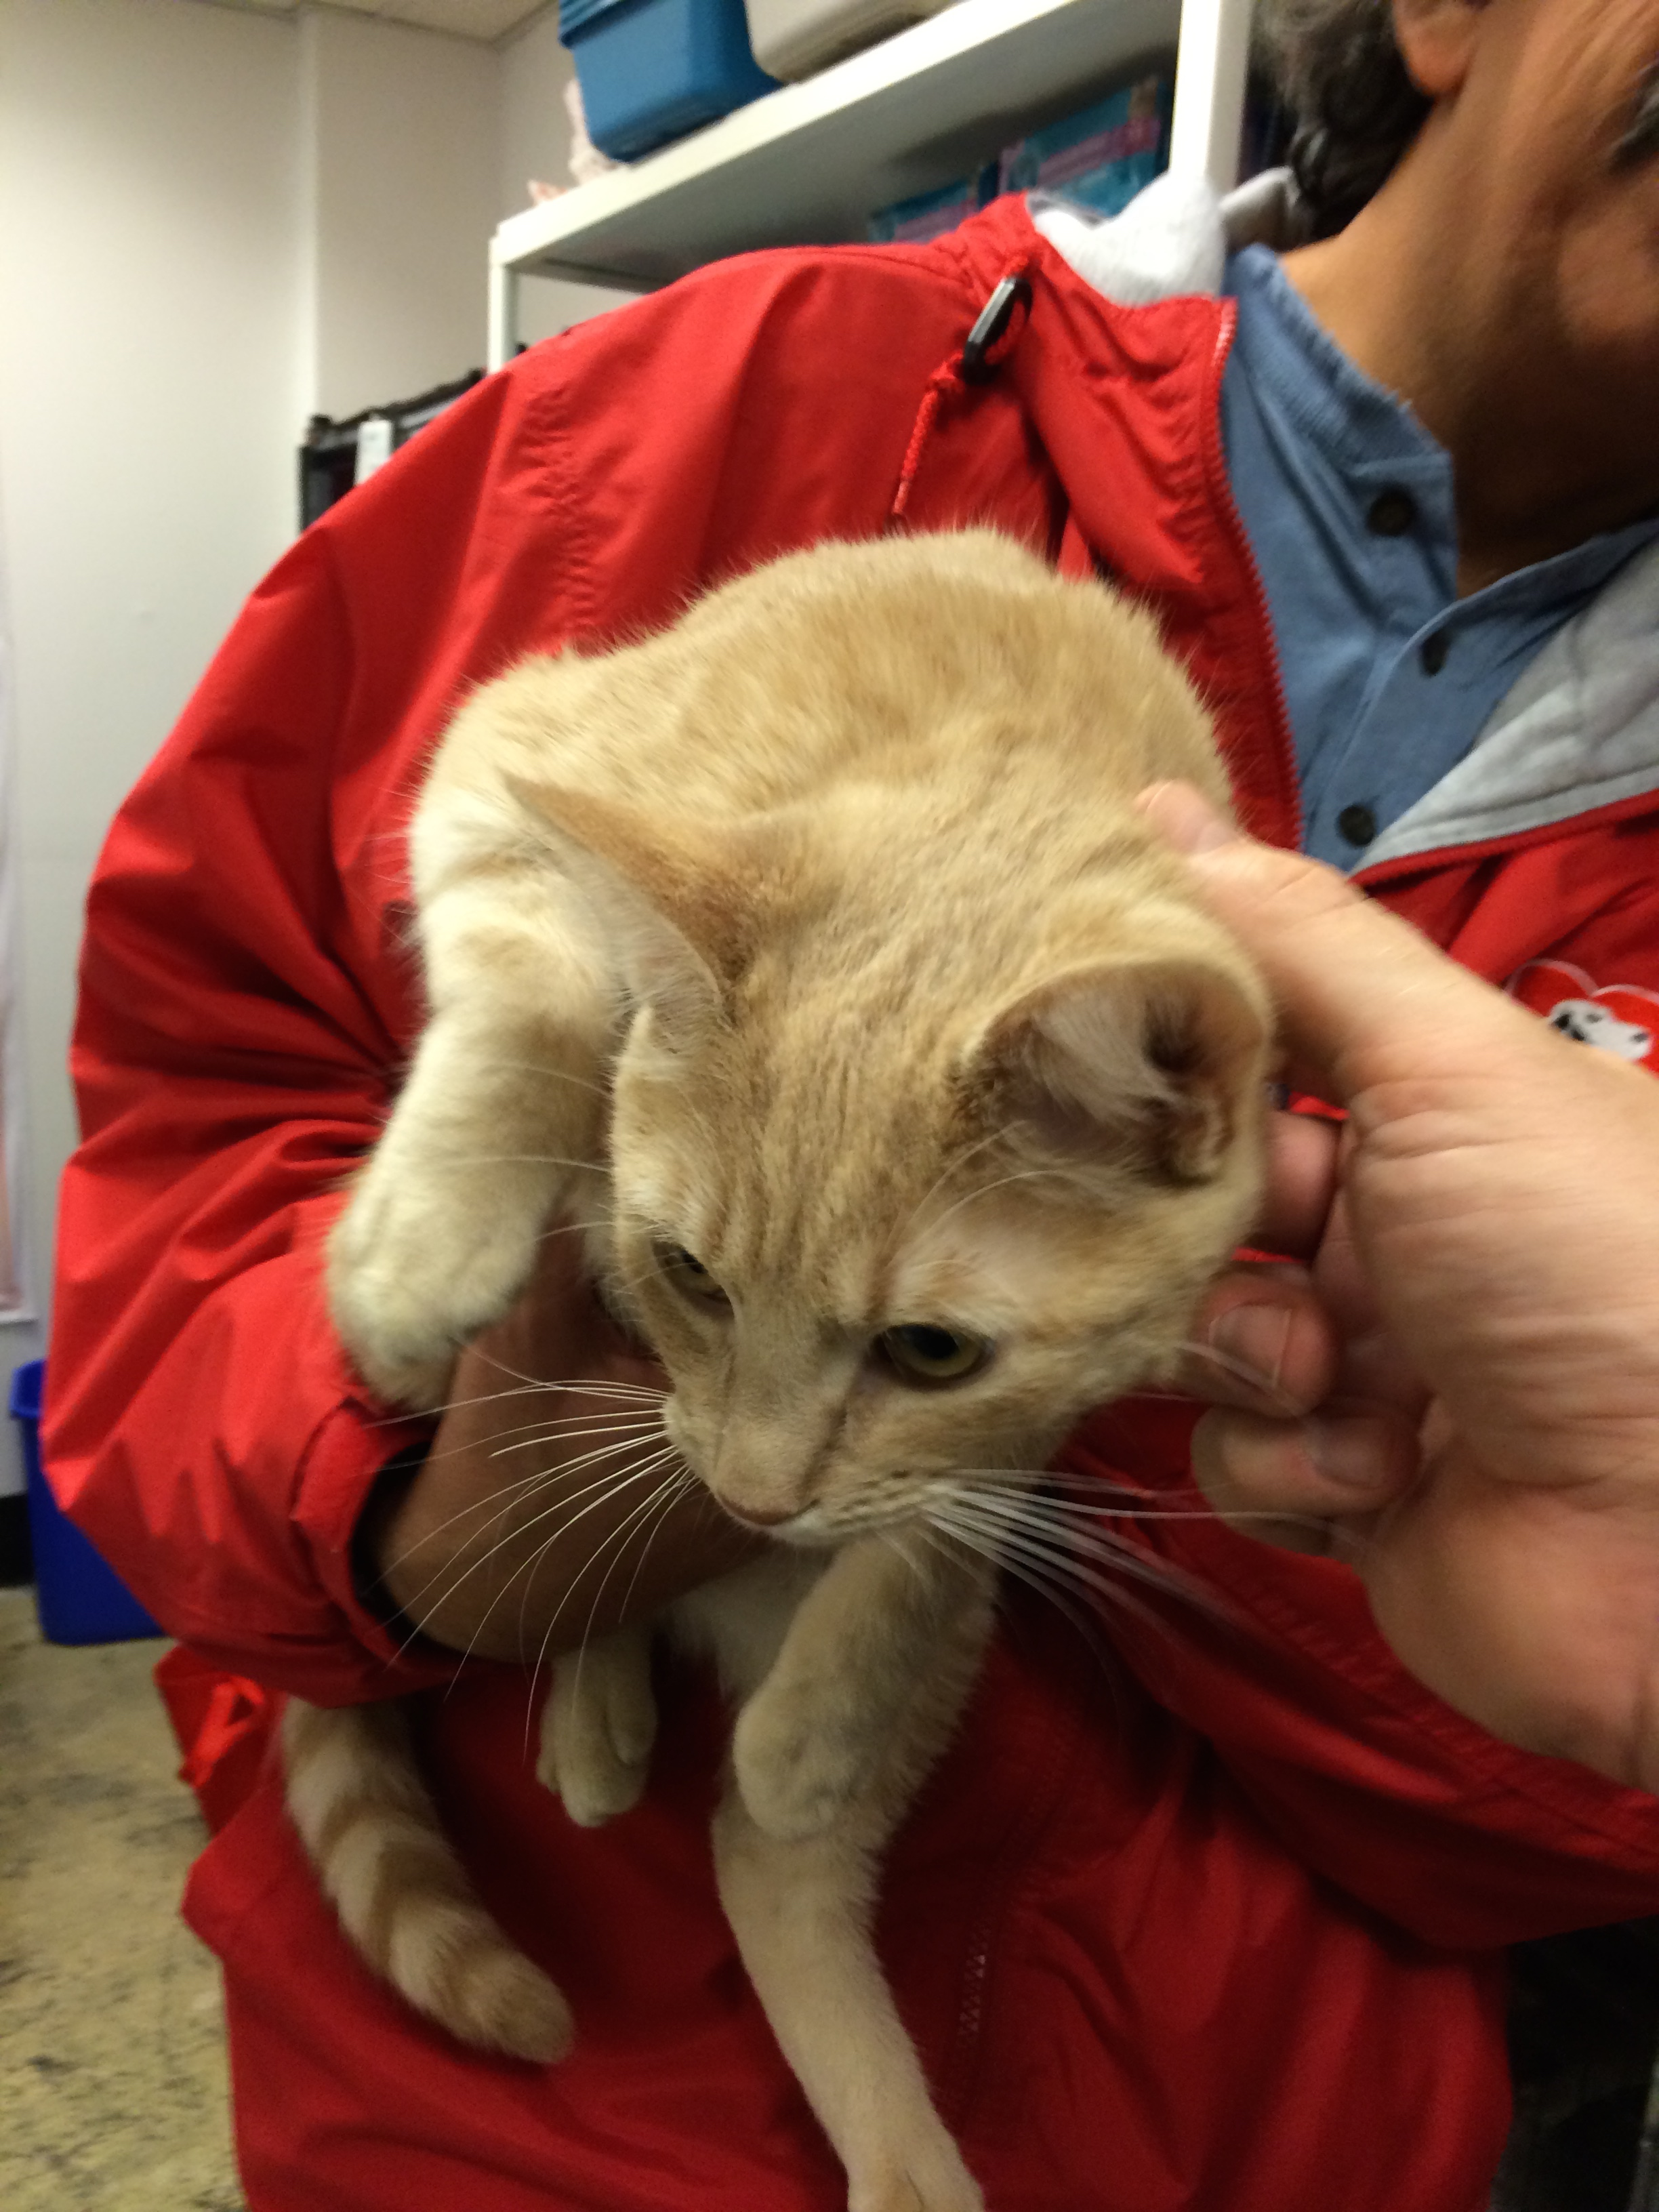 SPCA Volunteer Holding Marmalade Cat While He's Being Petted